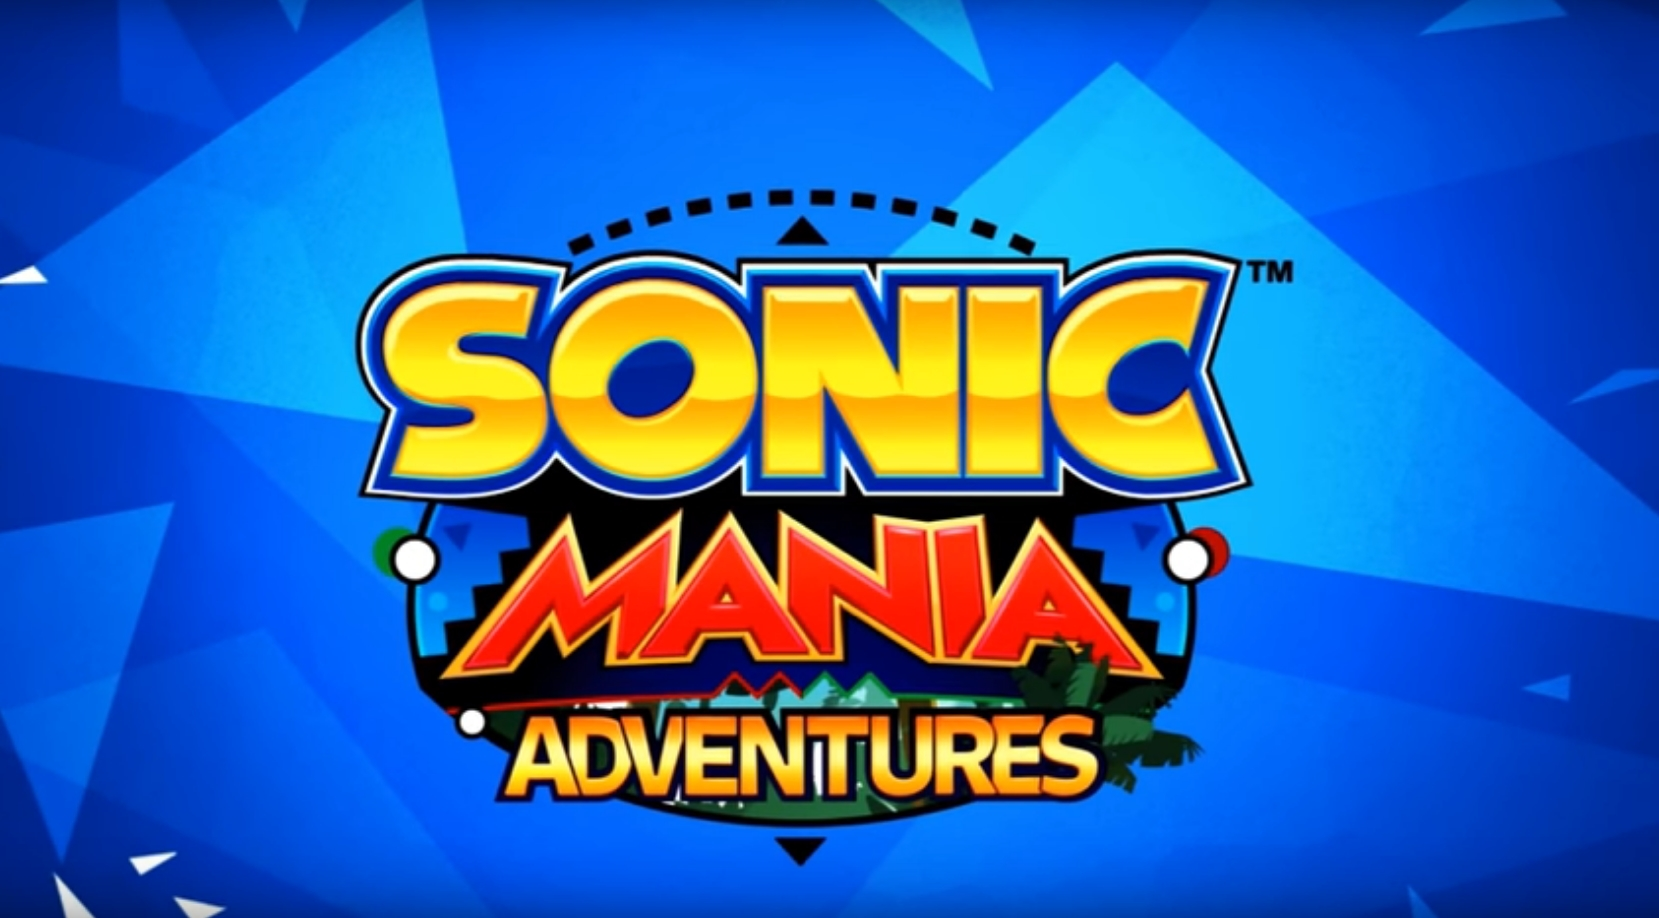 Anime Wallpaper Steam Sonic Mania Adventures 233 A Pr 243 Xima S 233 Rie Animada De Sonic